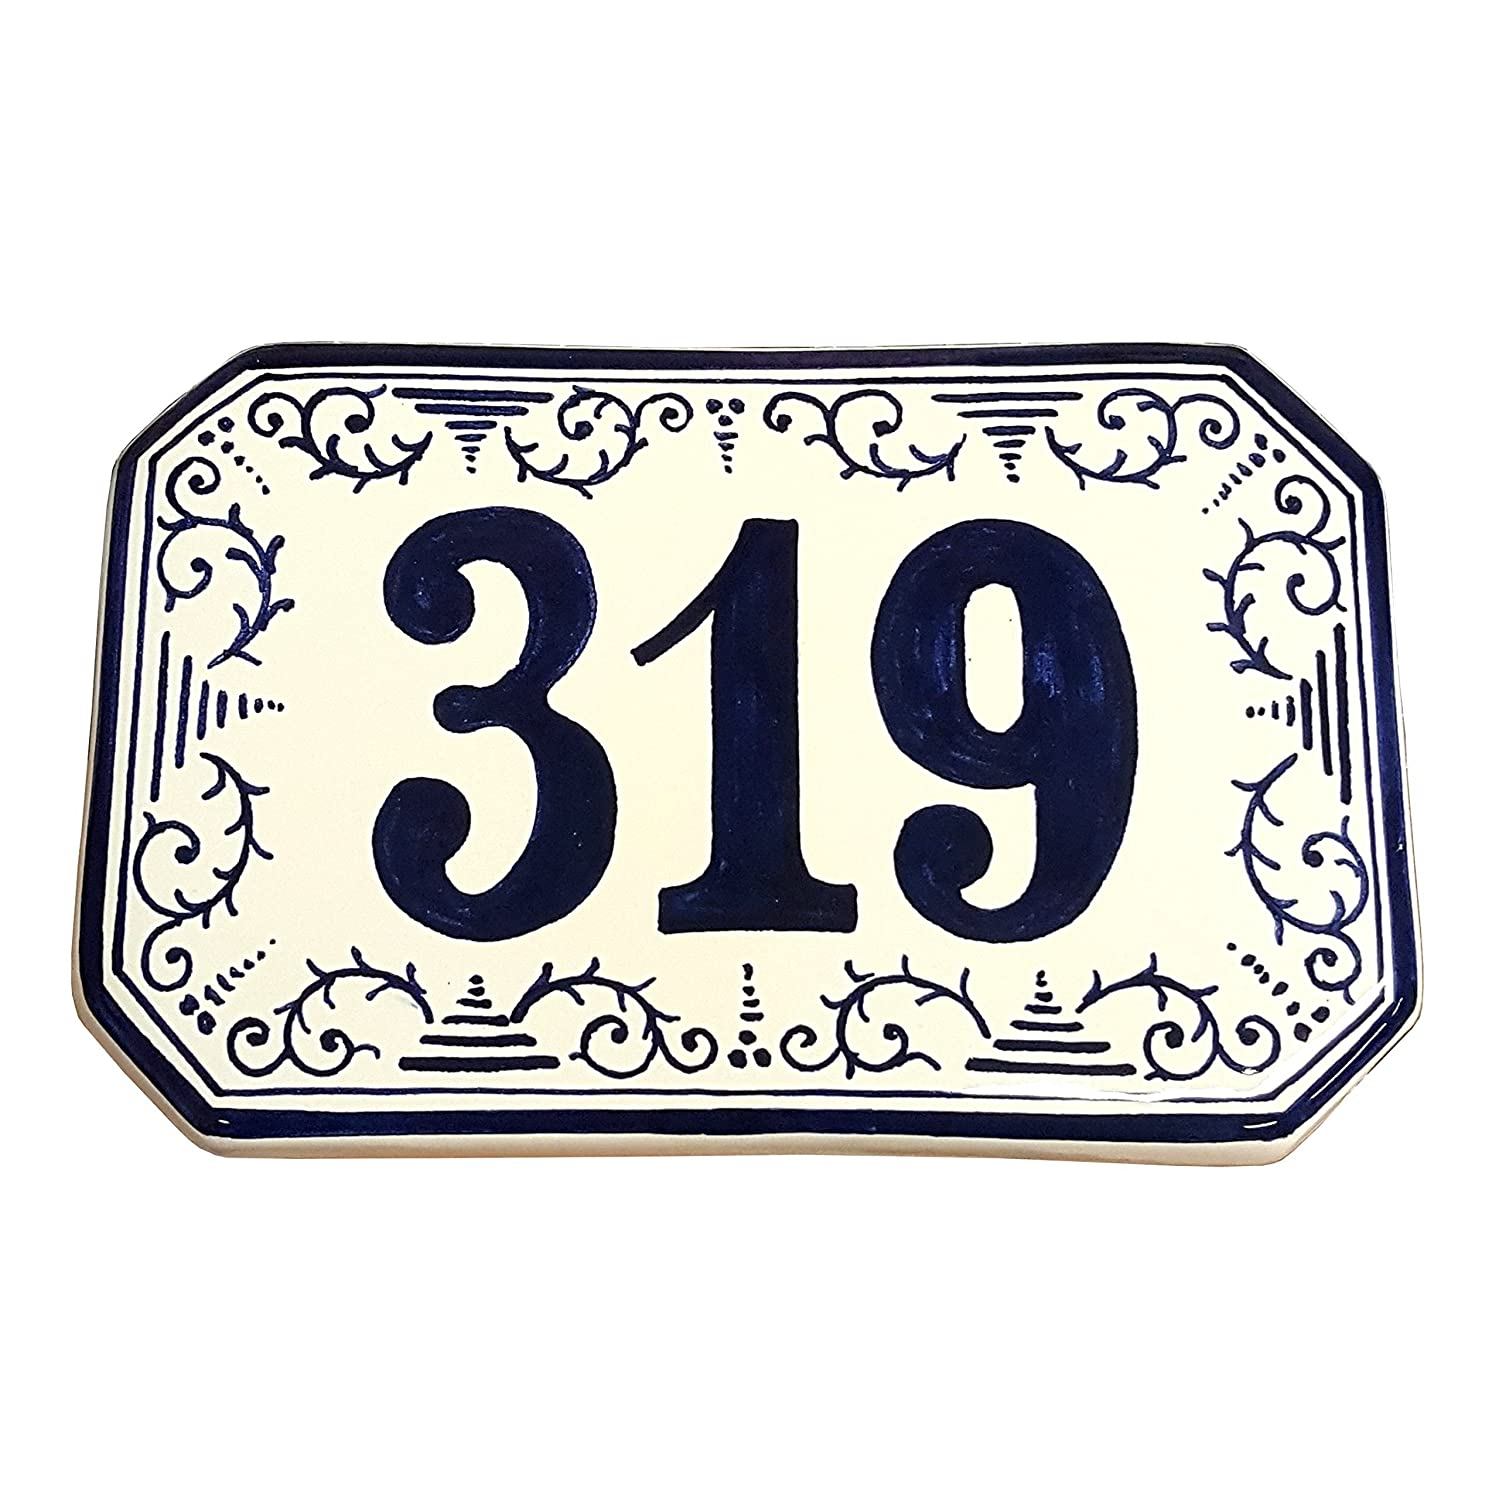 Amazon ceramiche darte parrini italian ceramic art pottery amazon ceramiche darte parrini italian ceramic art pottery tile custom house number civic address plaques hand painted made in italy tuscan dailygadgetfo Choice Image